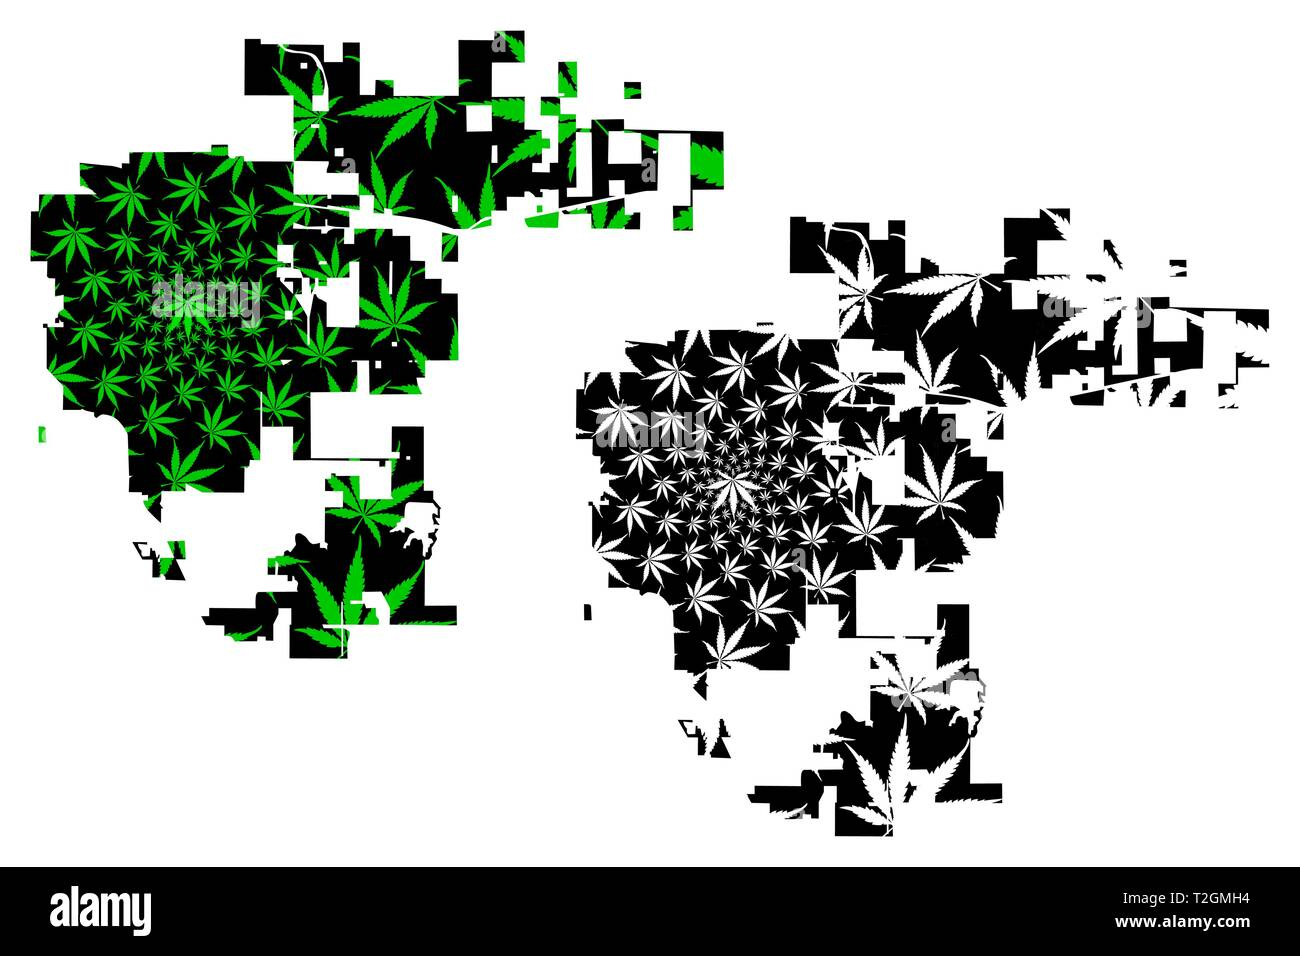 Aurora city (United States of America, USA, U.S., US, United States cities, usa city)- map is designed cannabis leaf green, City of Aurora map made of - Stock Image